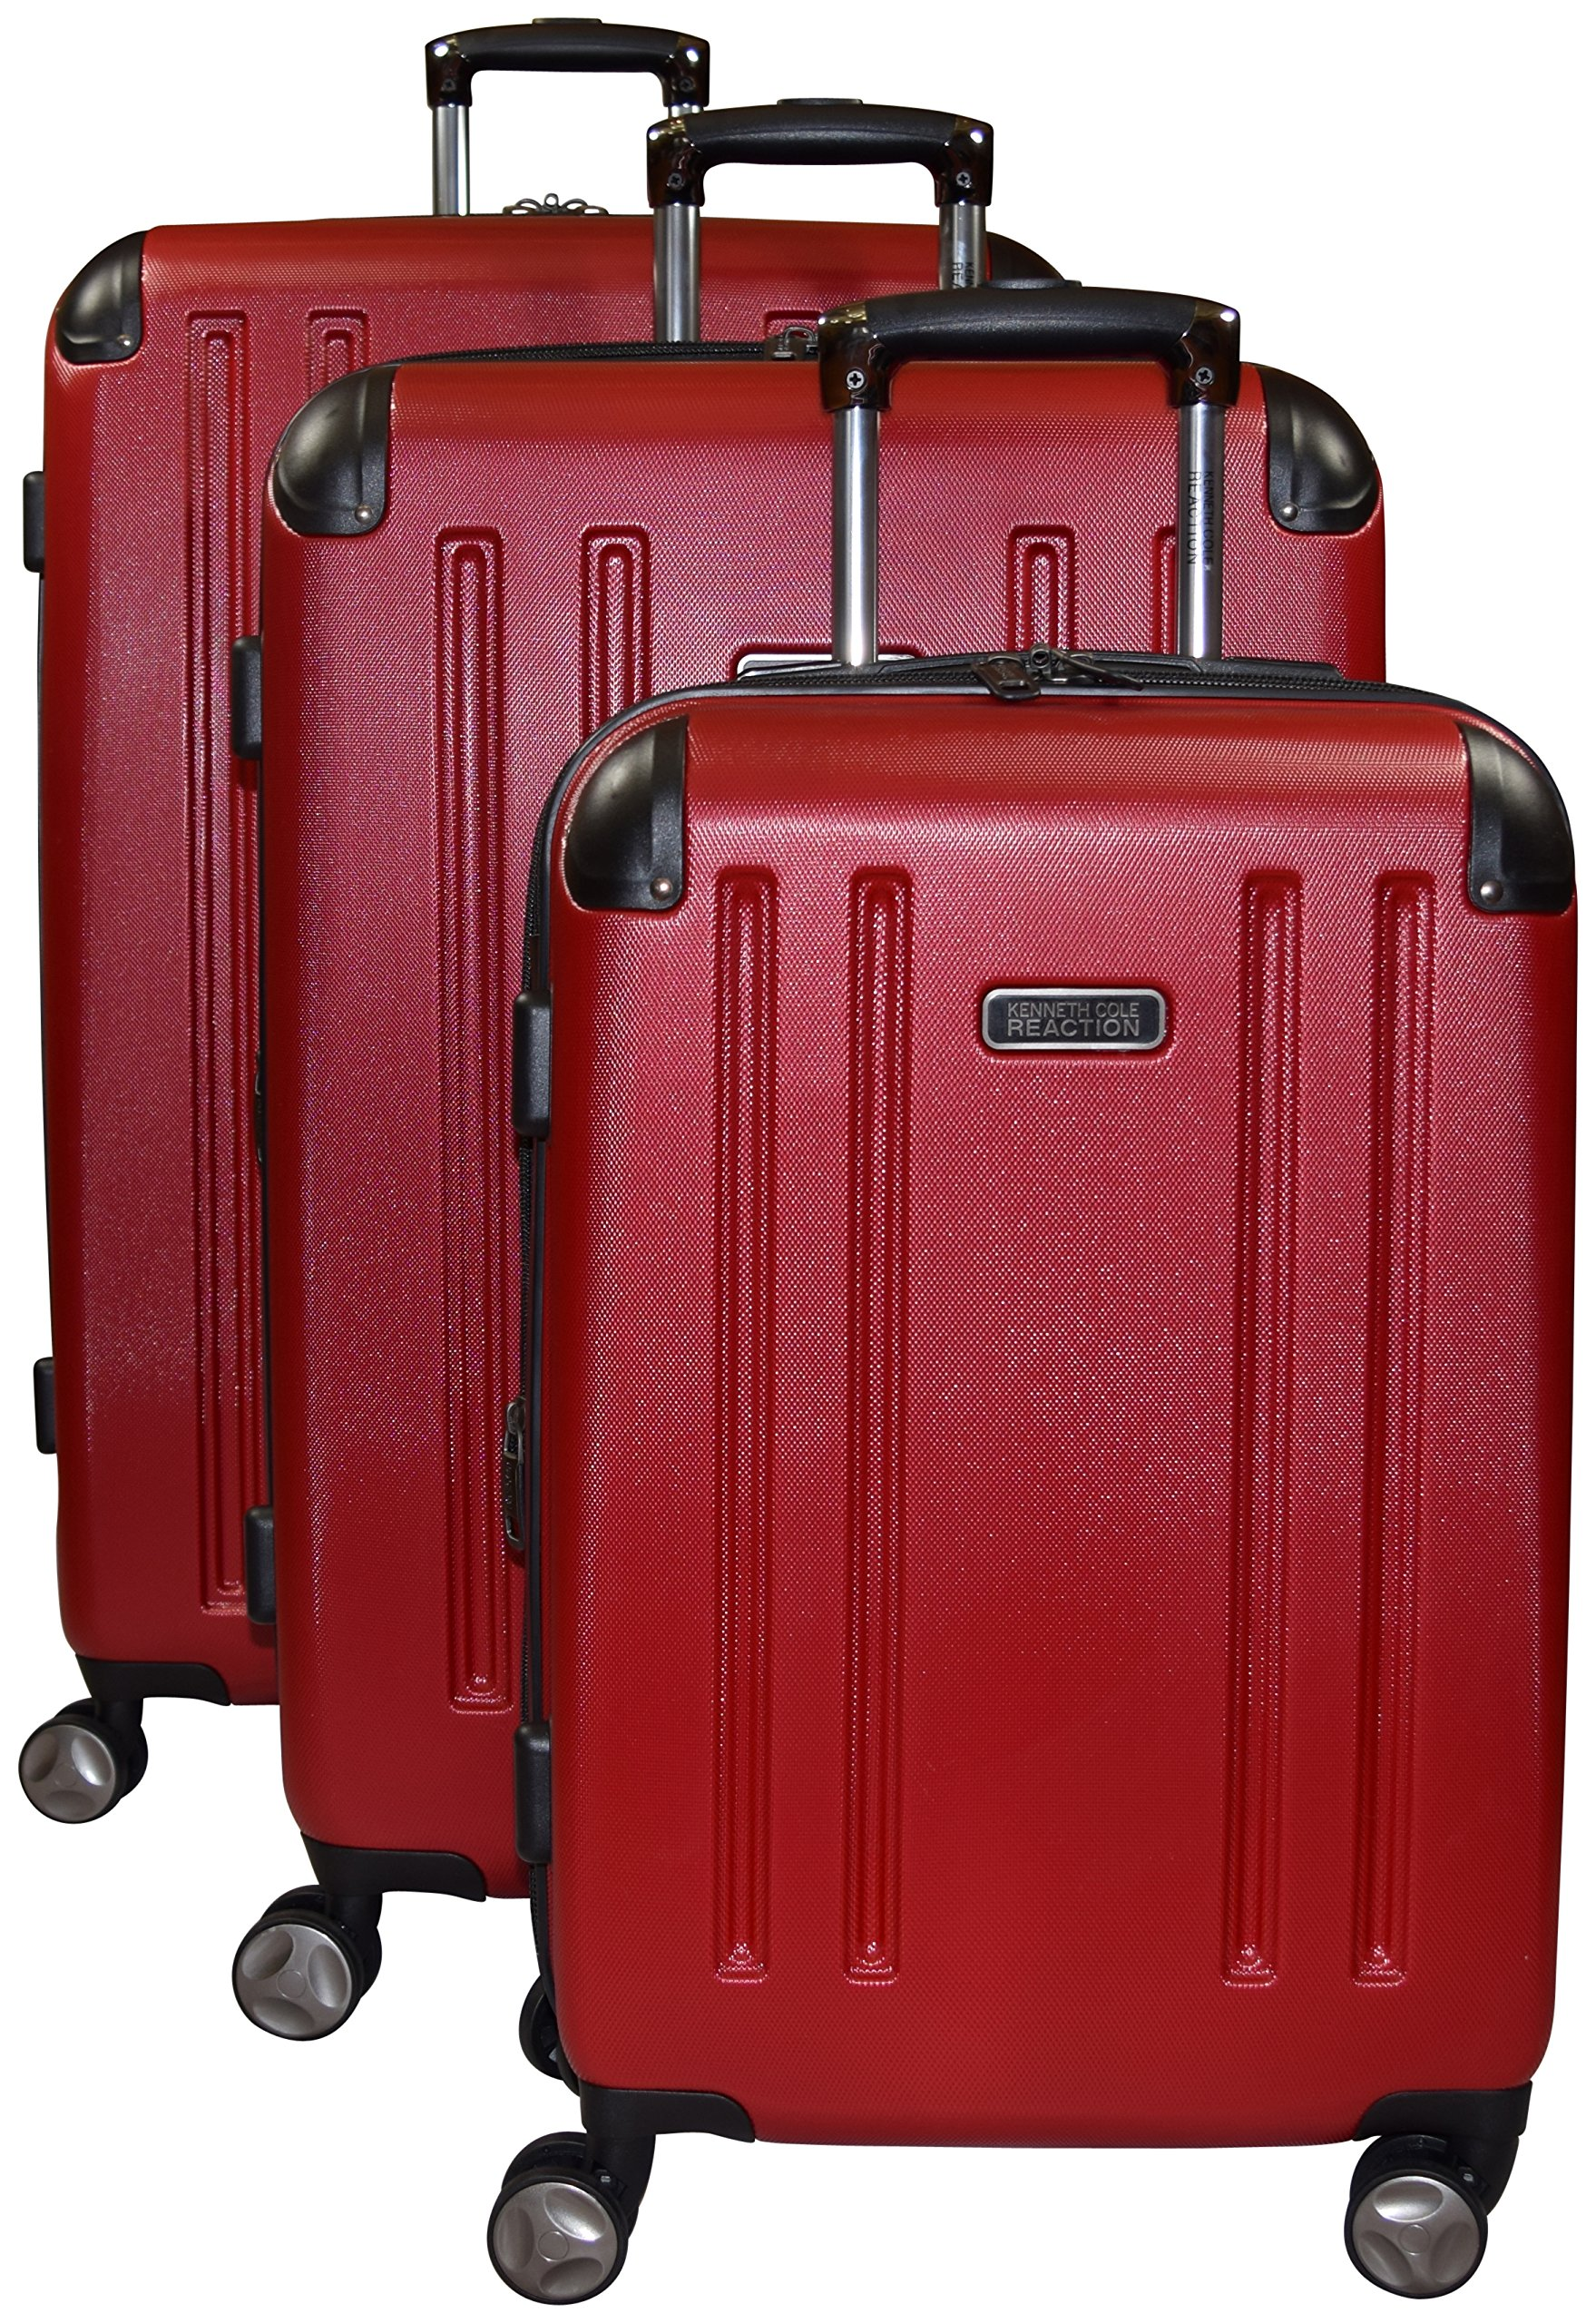 Kenneth Cole Reaction 8 Wheelin Expandable Luggage Spinner Wheeled Suitcase, 3 Pc Set , 29, 25 & 20-inch (Red) by Kenneth Cole